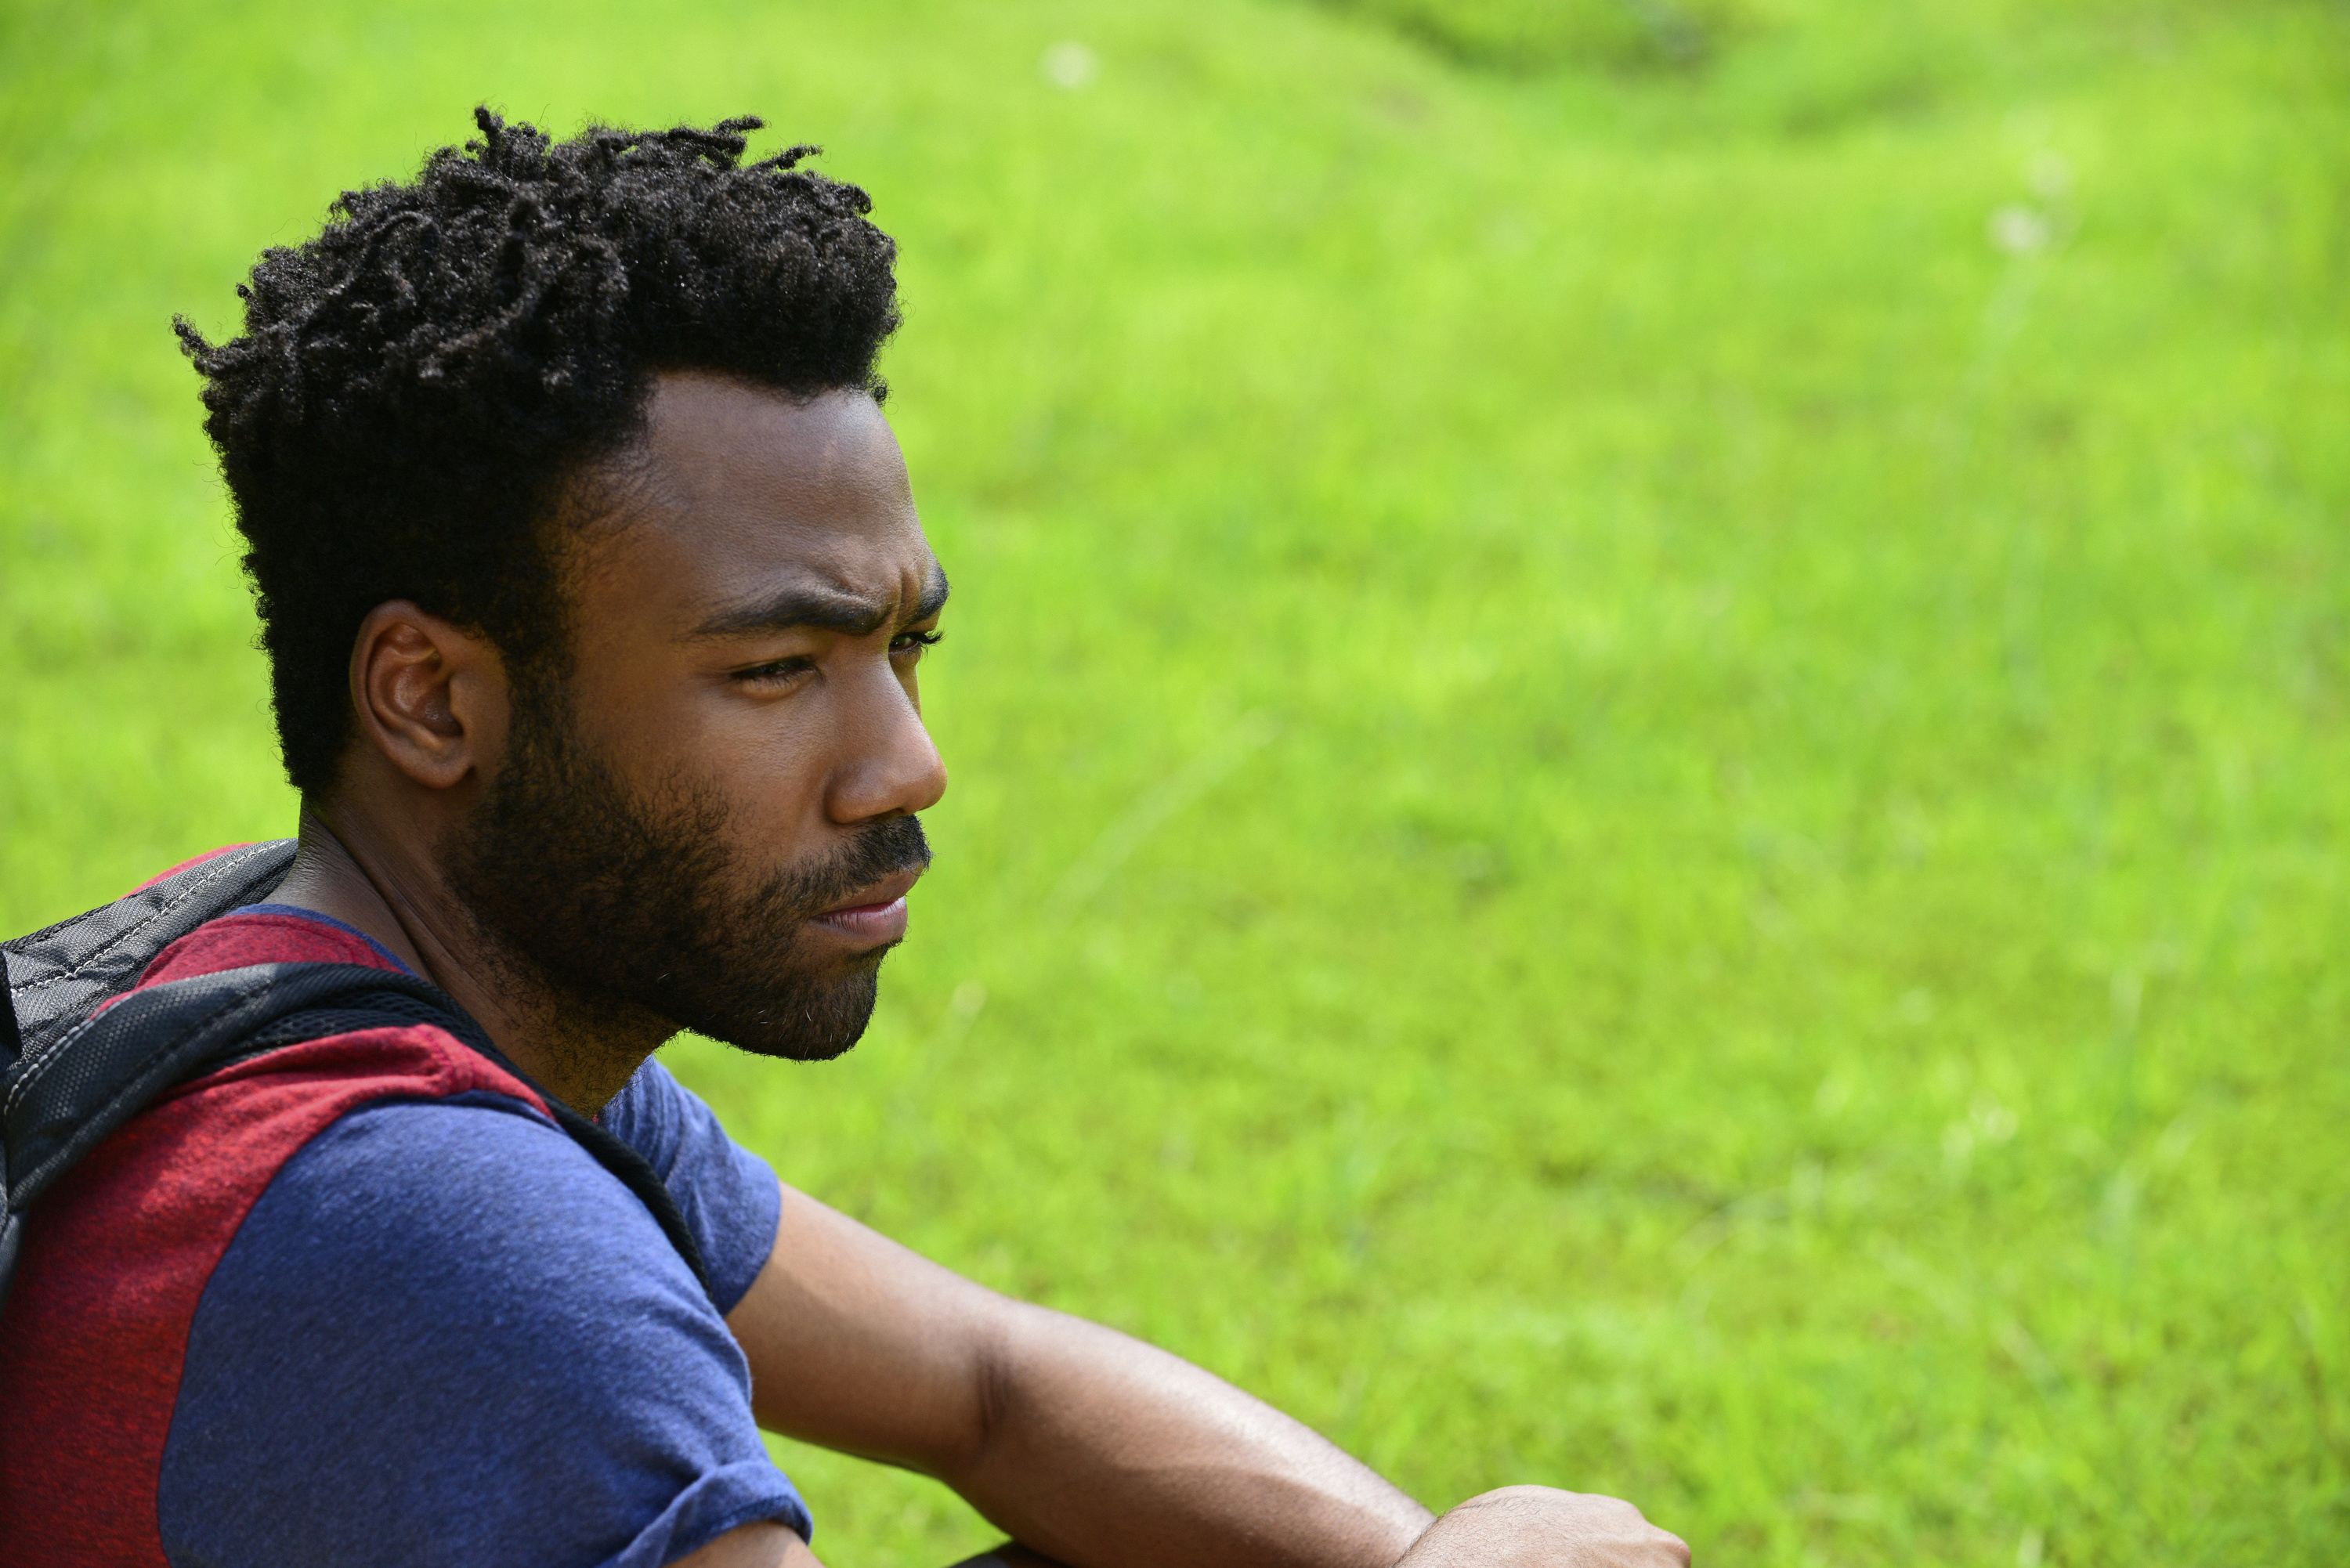 Donald Glover as Earnest Marks.